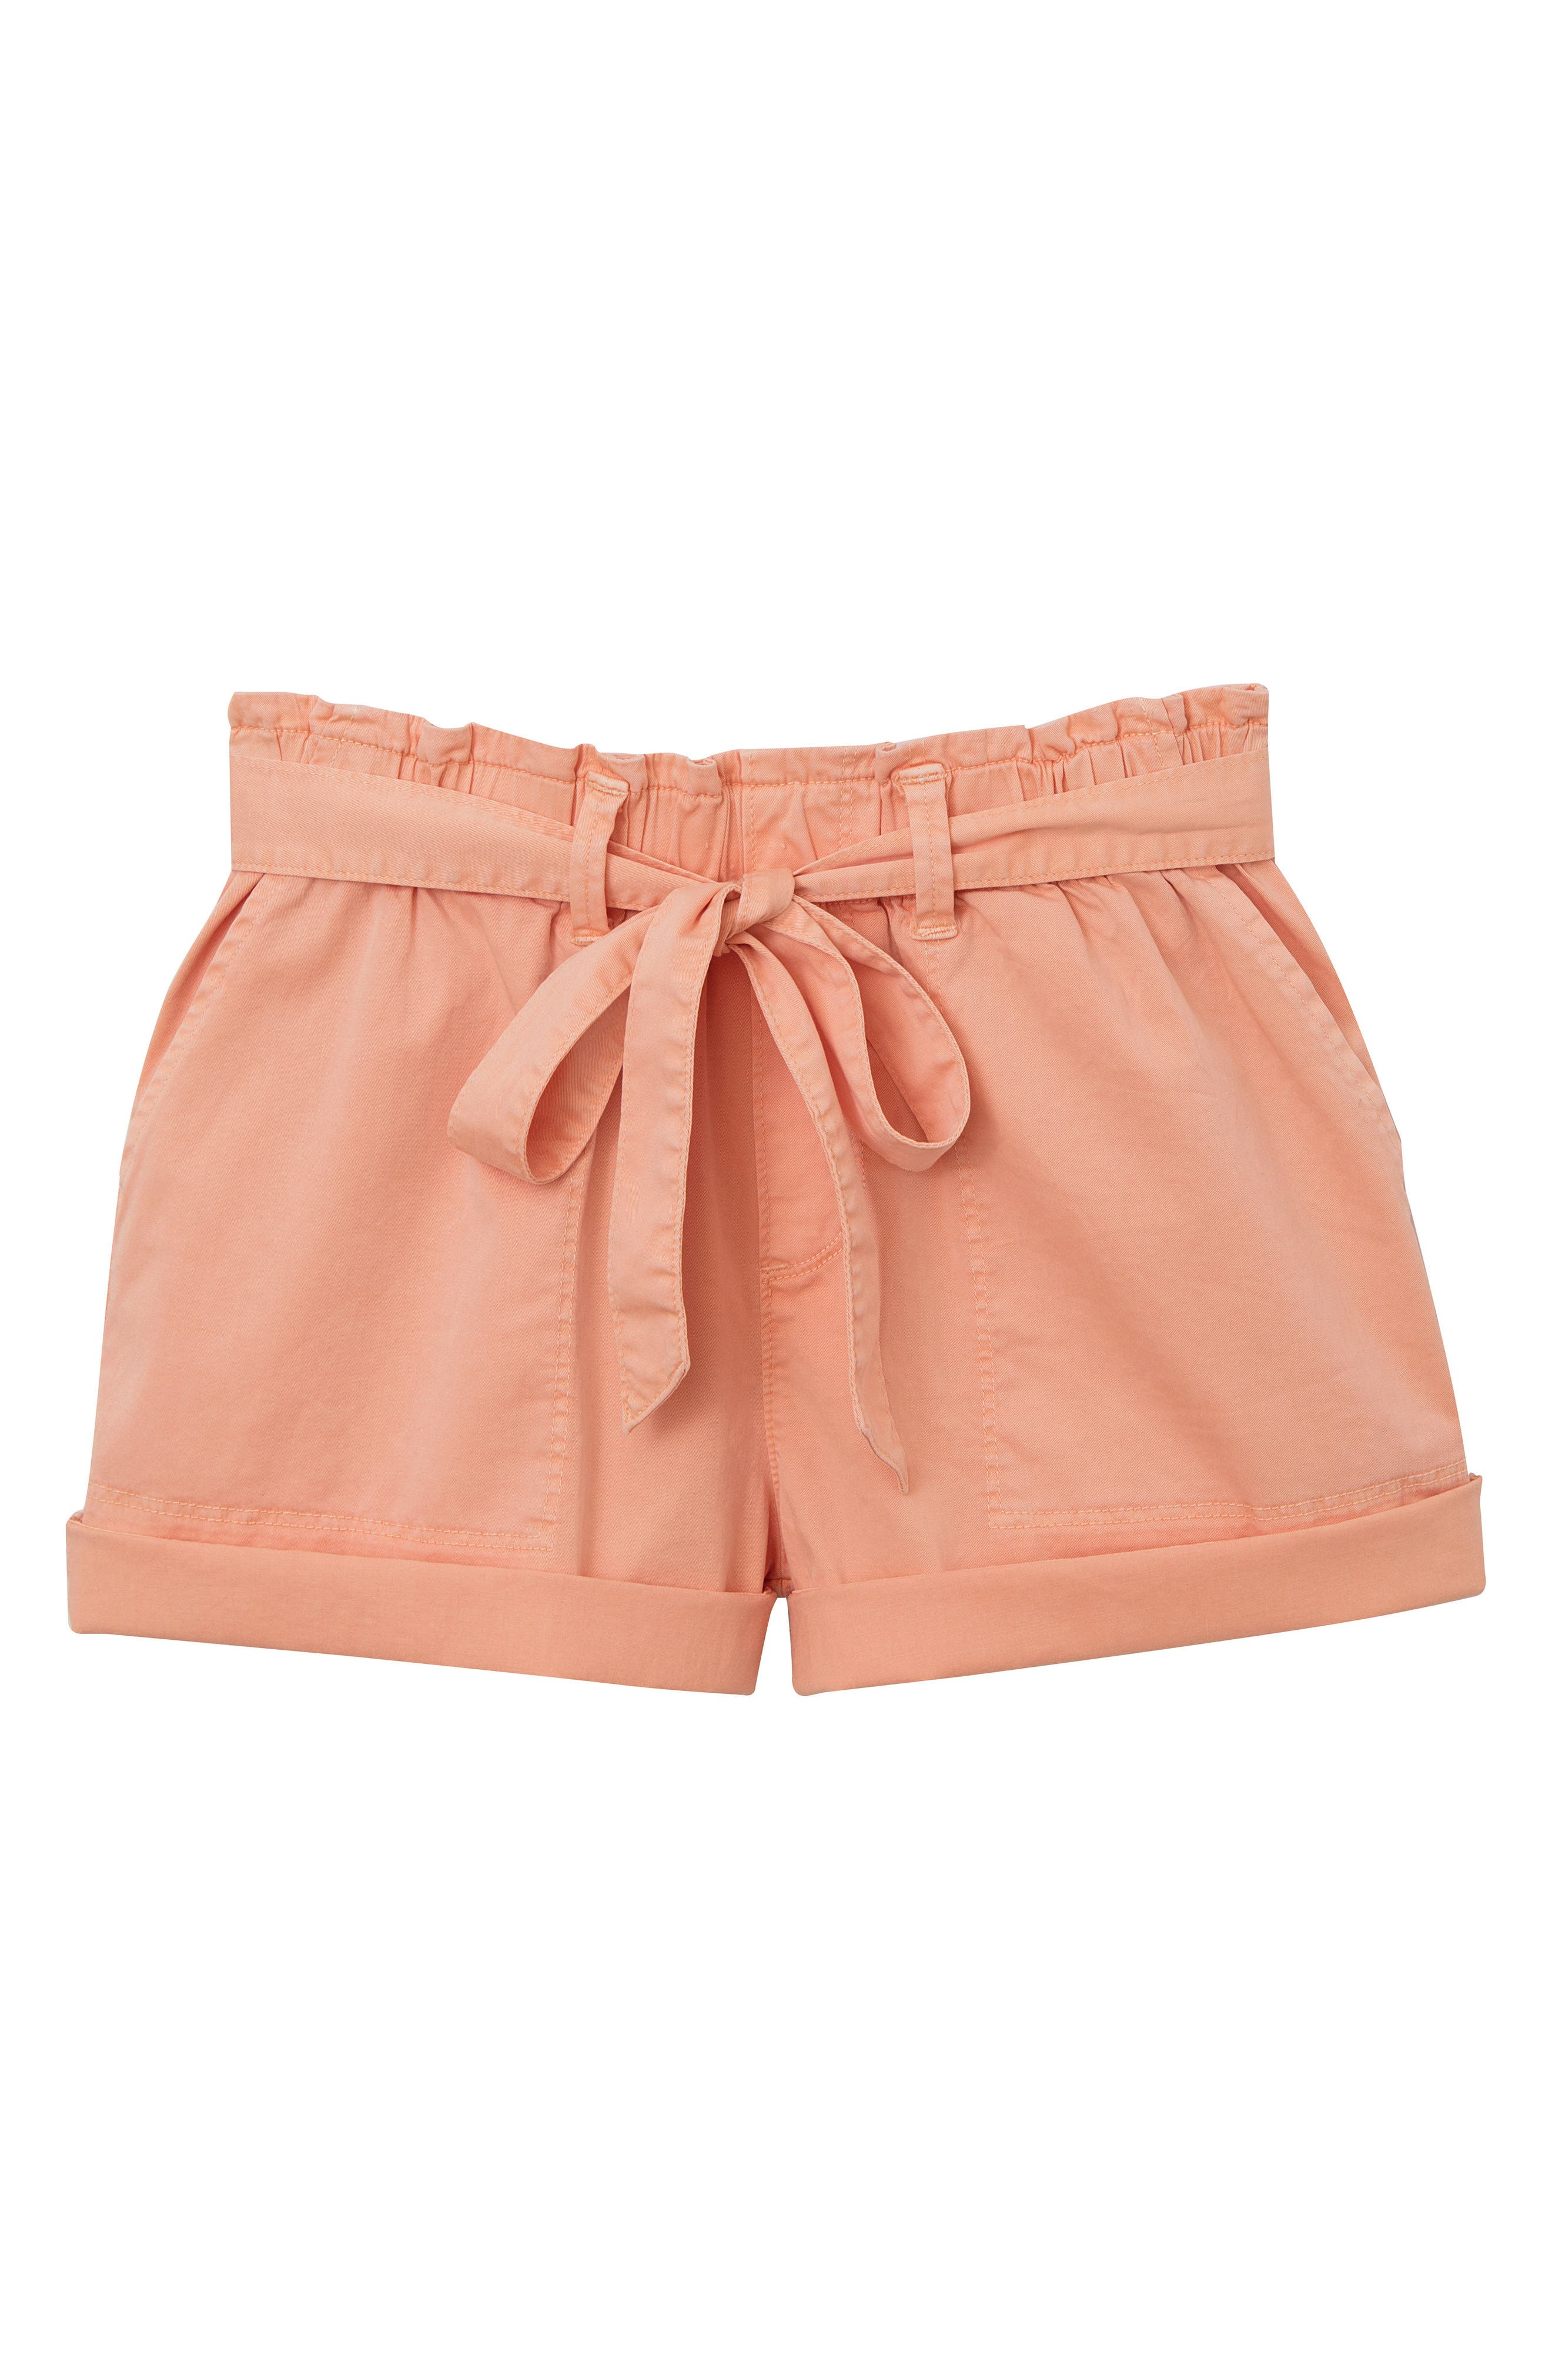 Daydreamer Shorts,                             Alternate thumbnail 11, color,